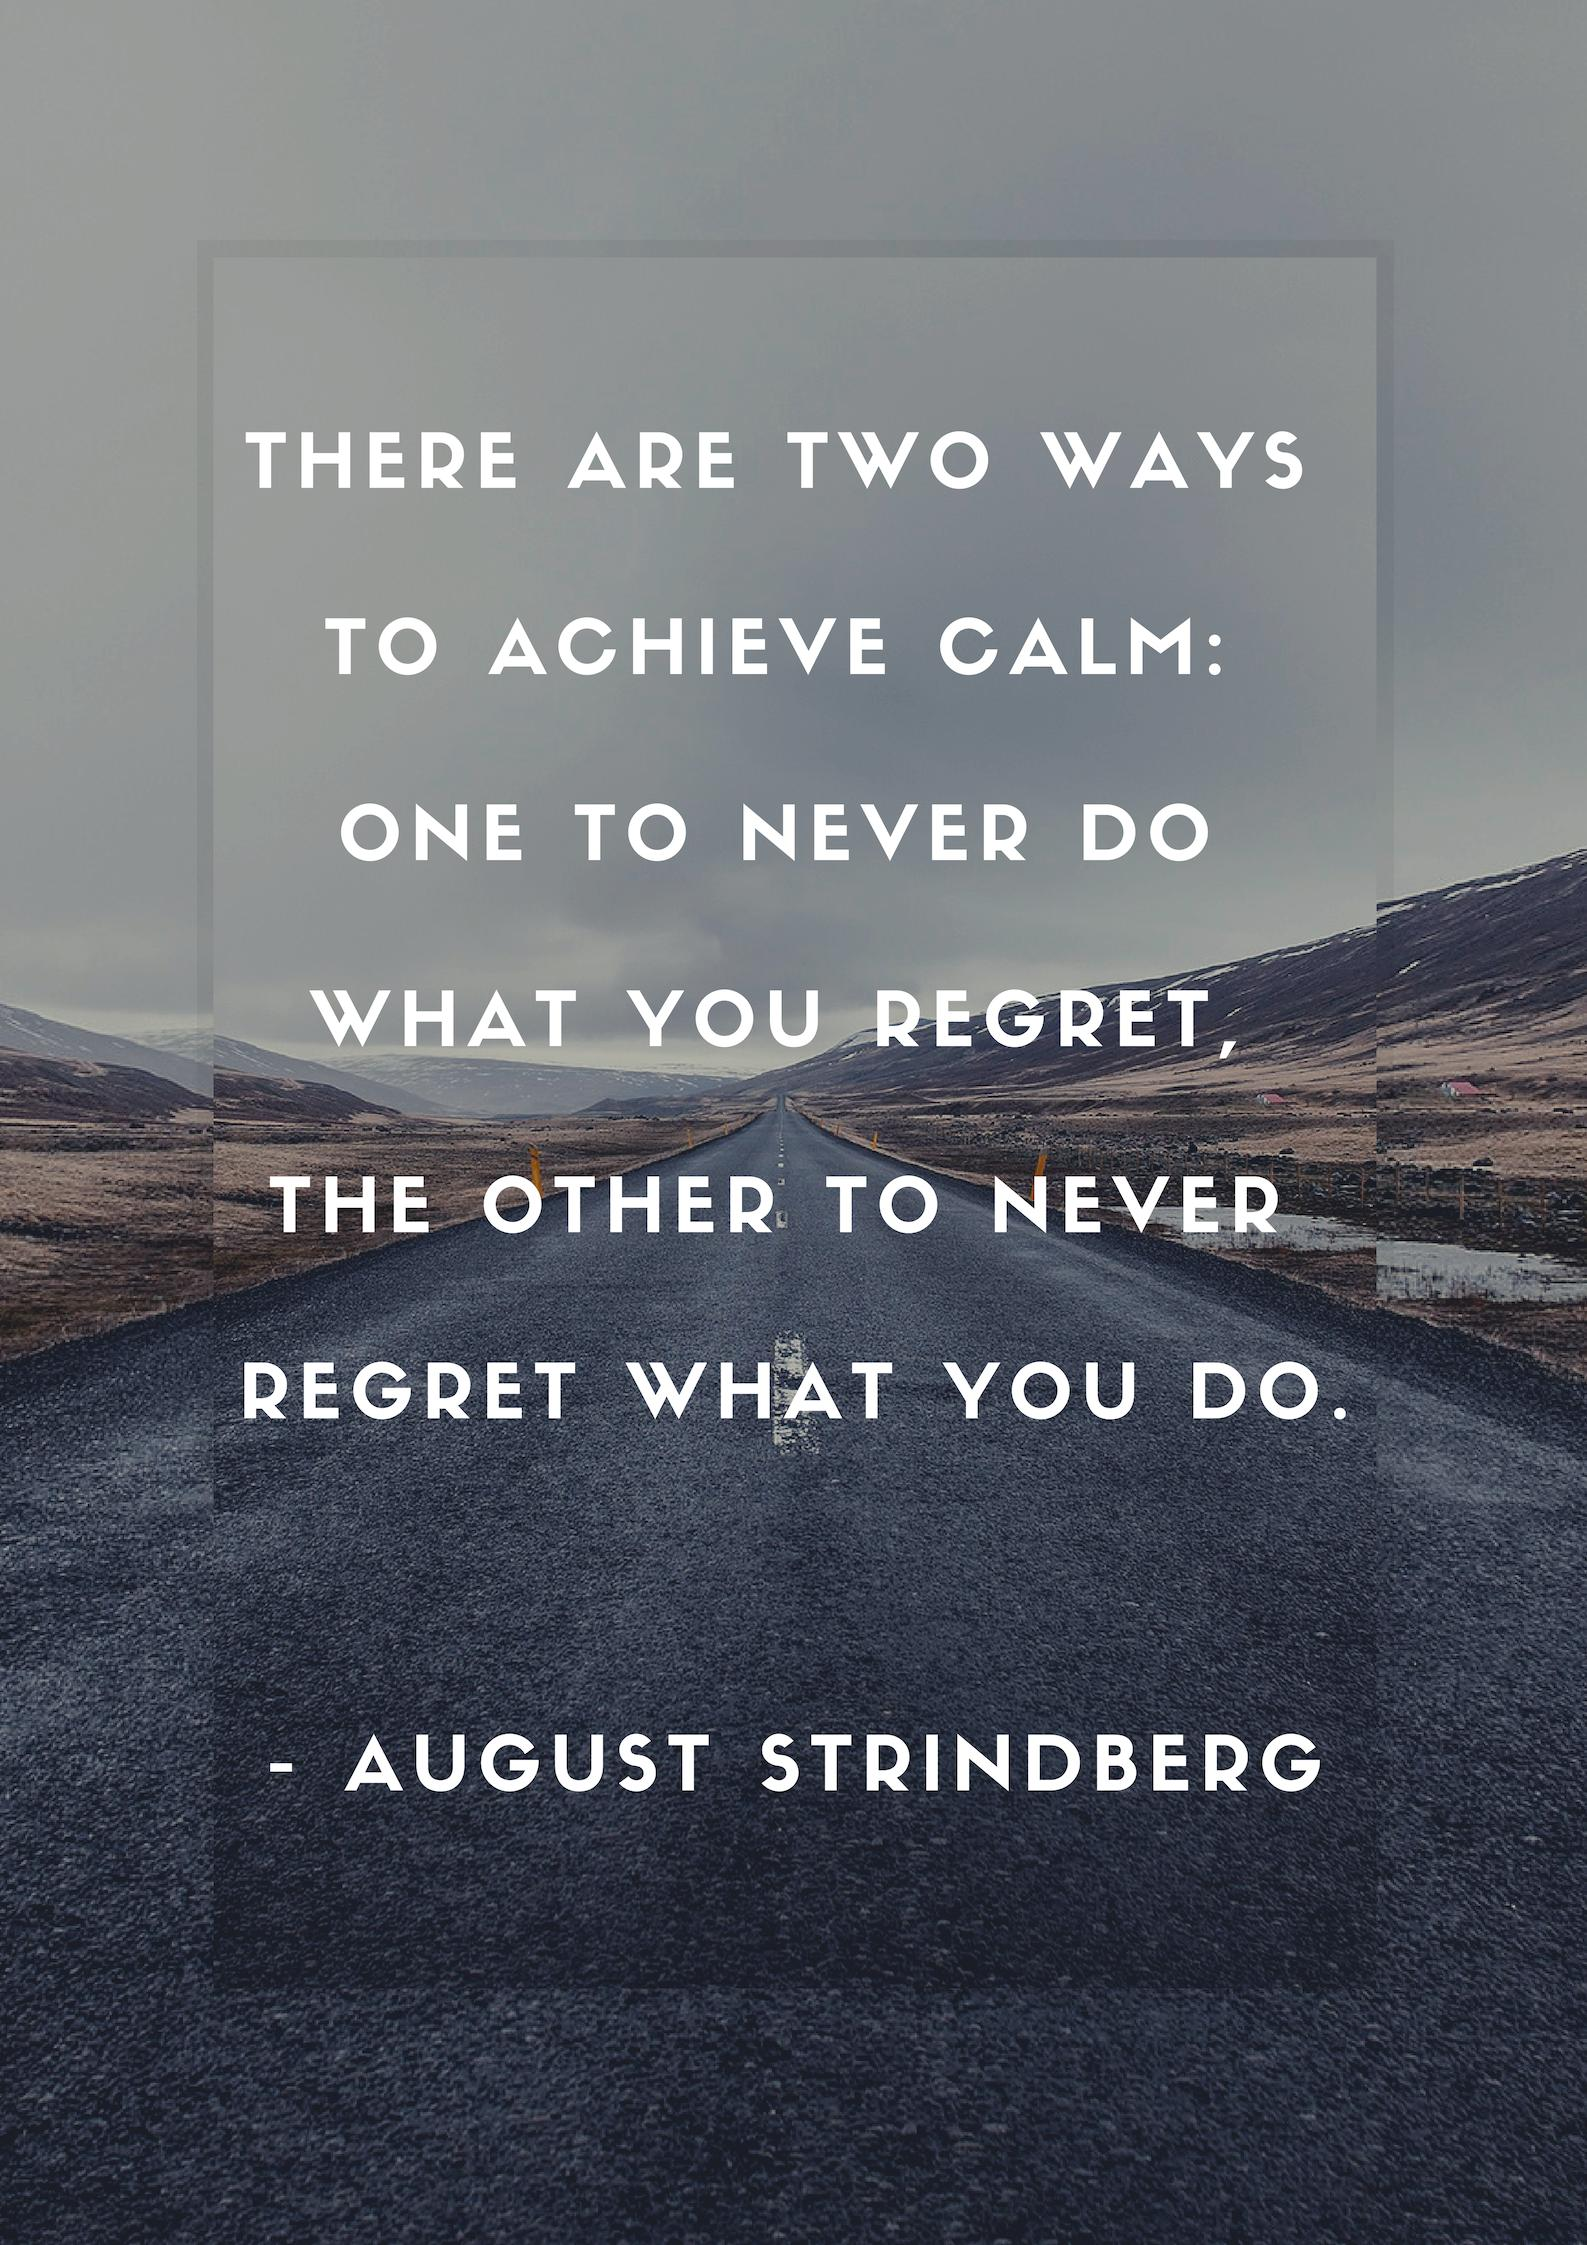 """There are two ways to achieve calm: one is to never do what you regret, the other to never regret what you do."" -August Strindberg [1587×2245]"